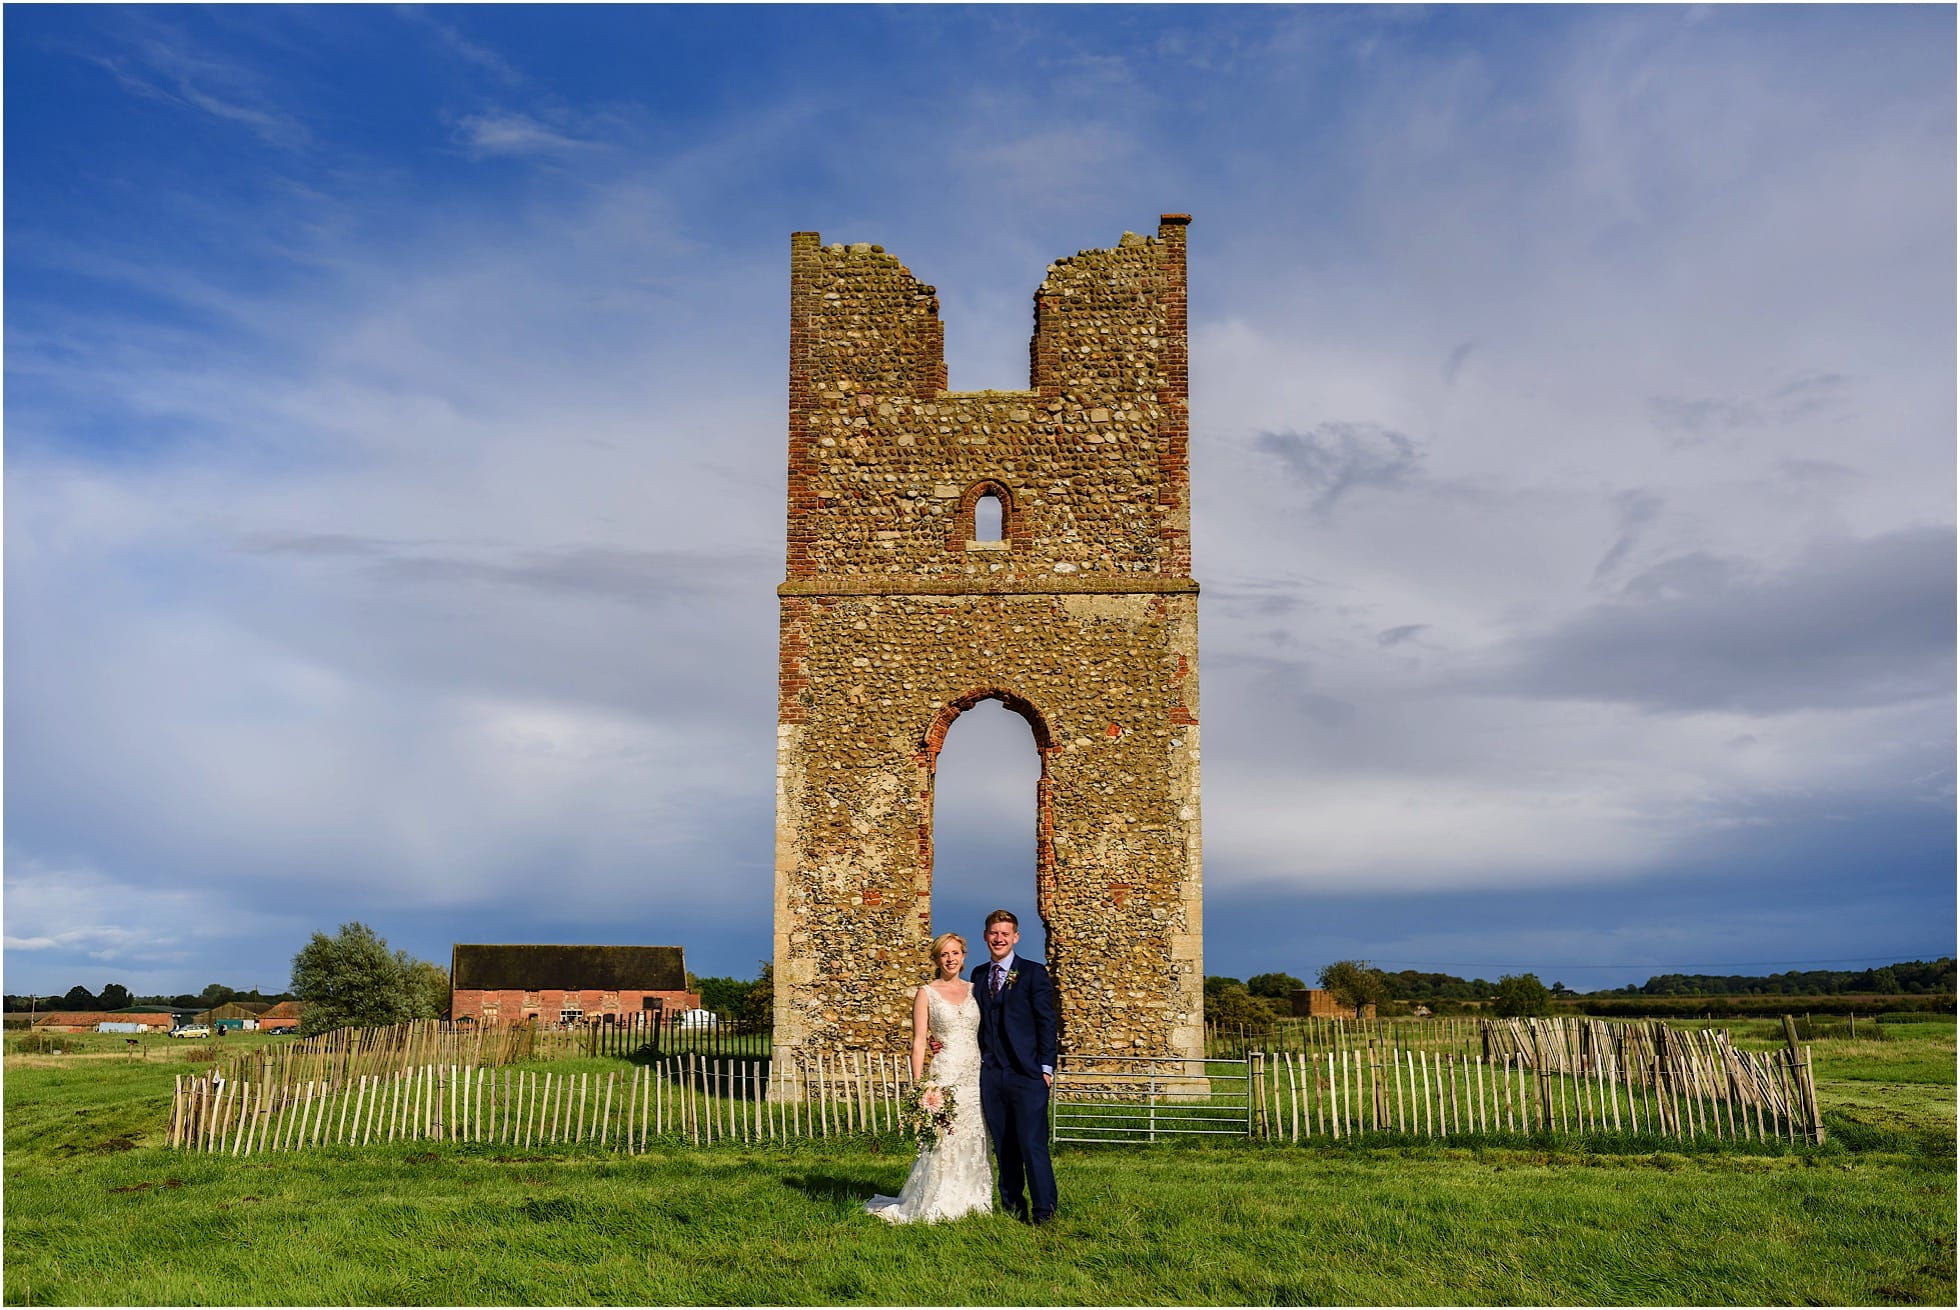 Godwick Hall Wedding Photographer shot of the ancient arch